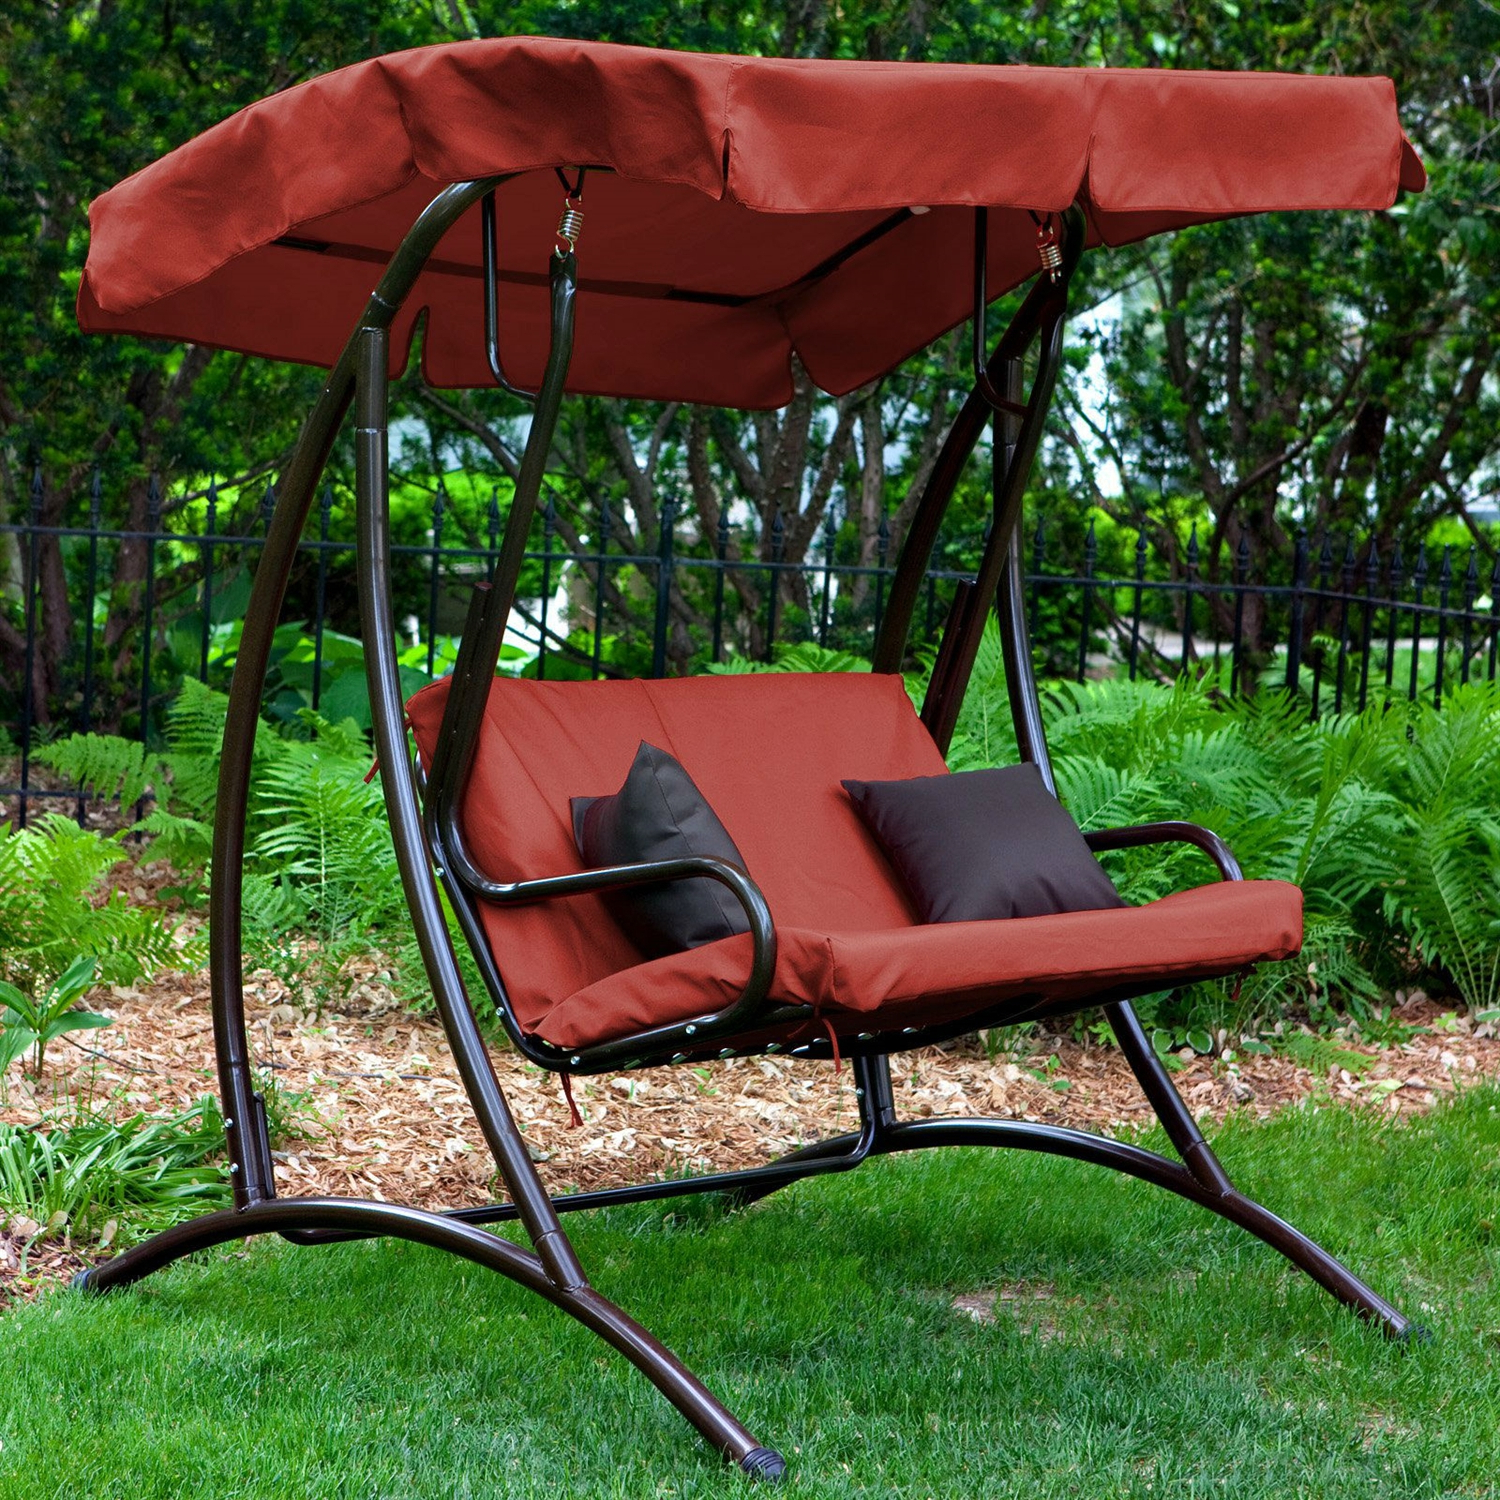 Most Current Porch Swings With Canopy Intended For 2 Seat Outdoor Porch Swing With Canopy In Terracotta Red (Gallery 14 of 30)